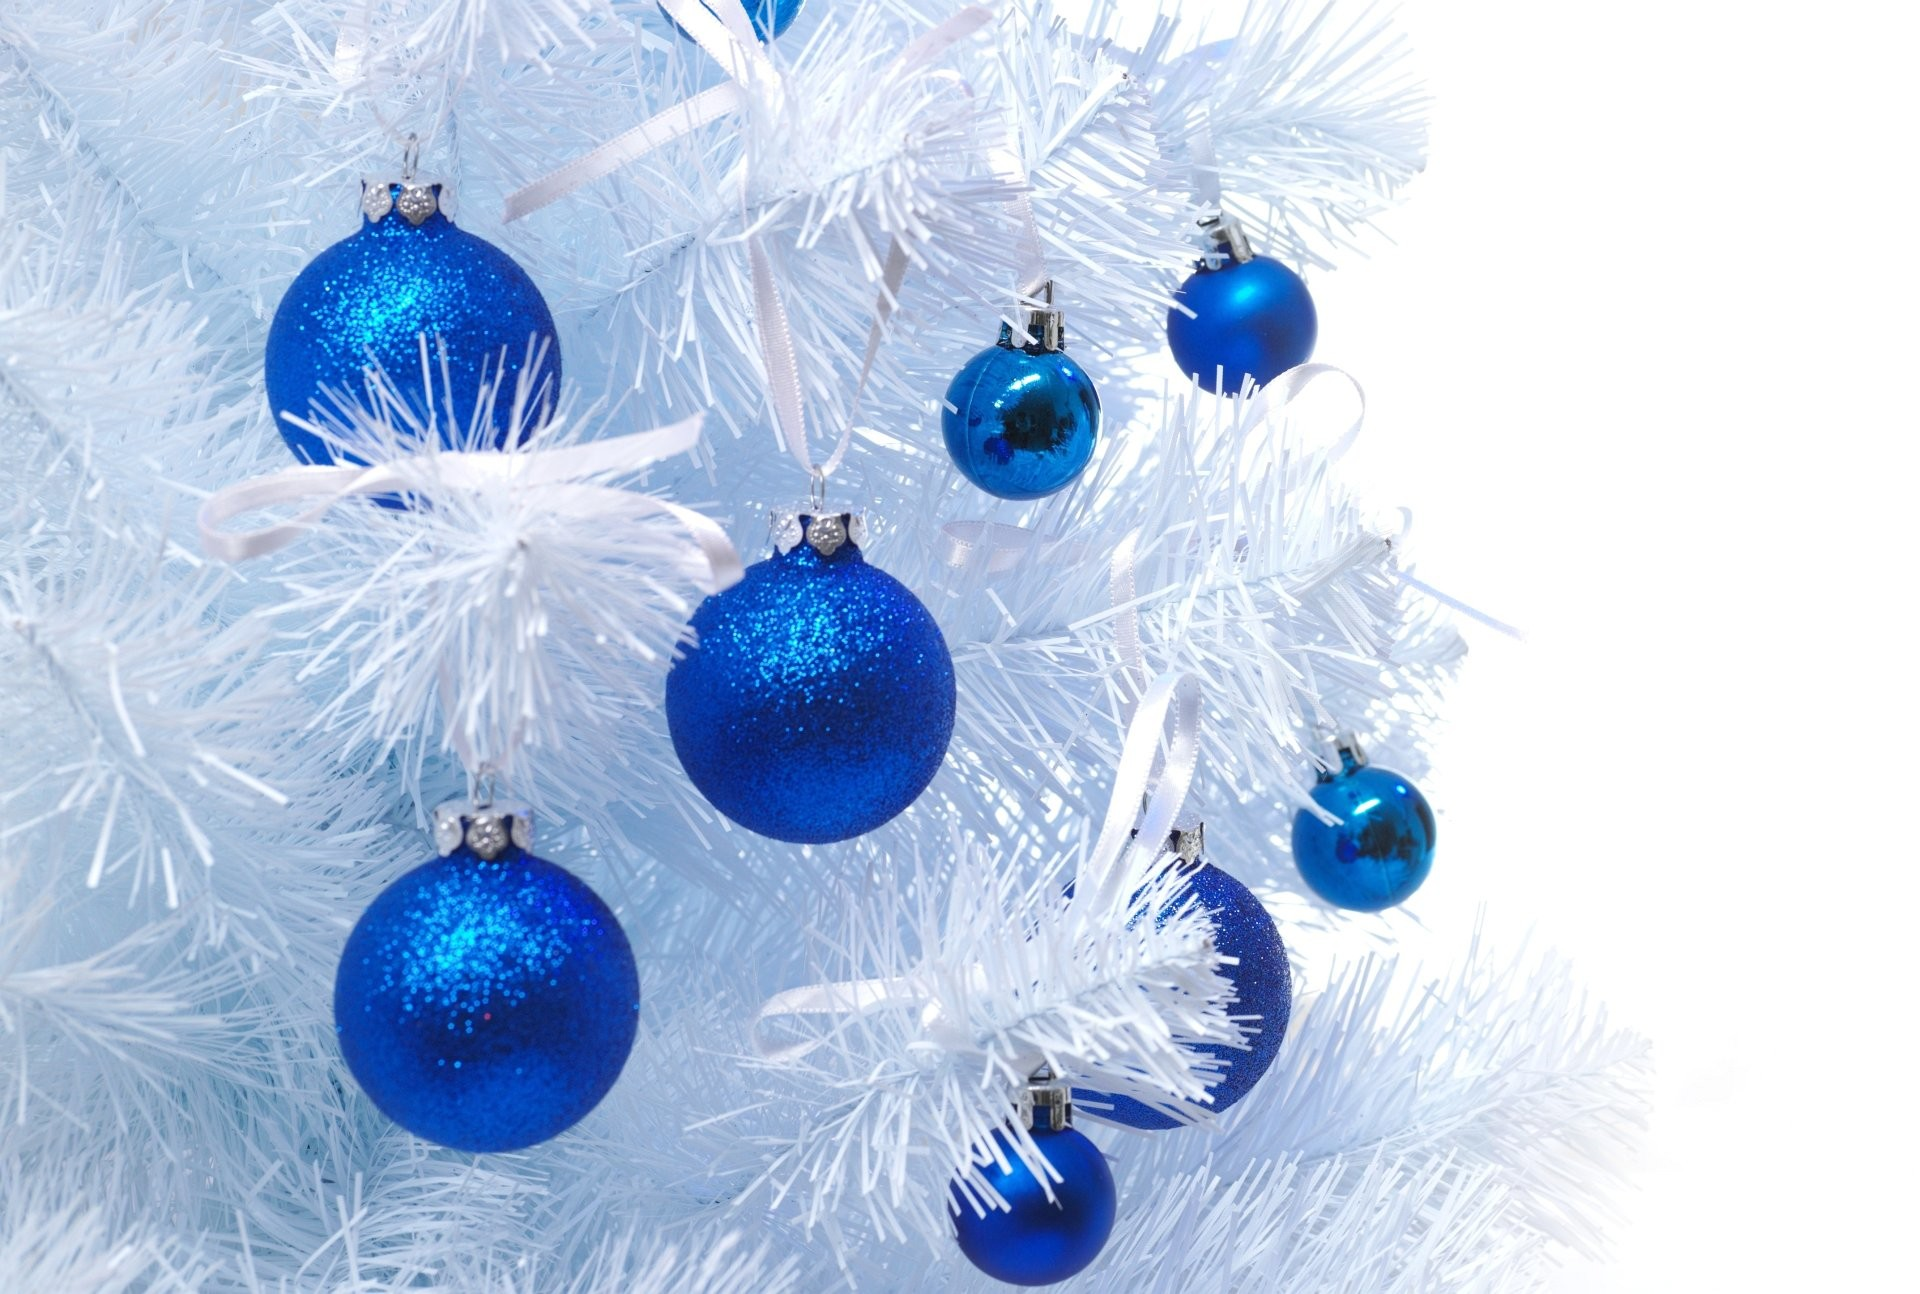 1920x1294 Wallpaper Christmas White And Blue